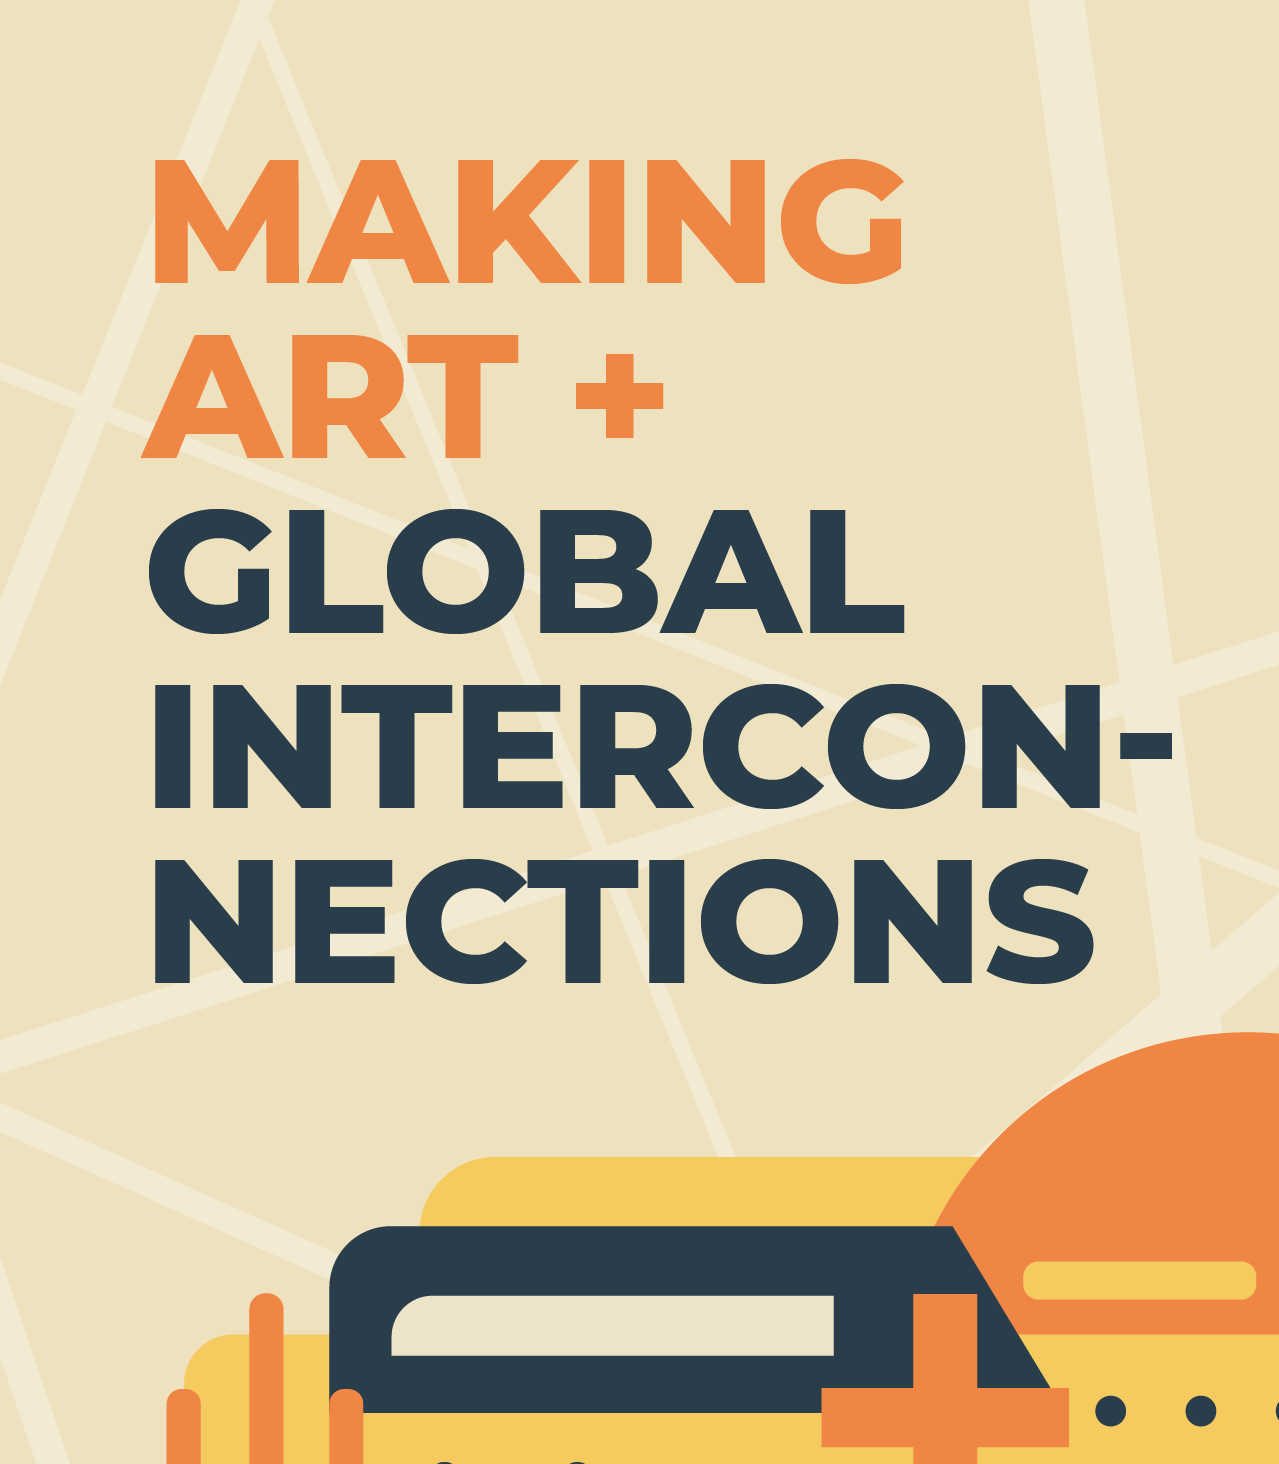 Making Art + Global Interconnections